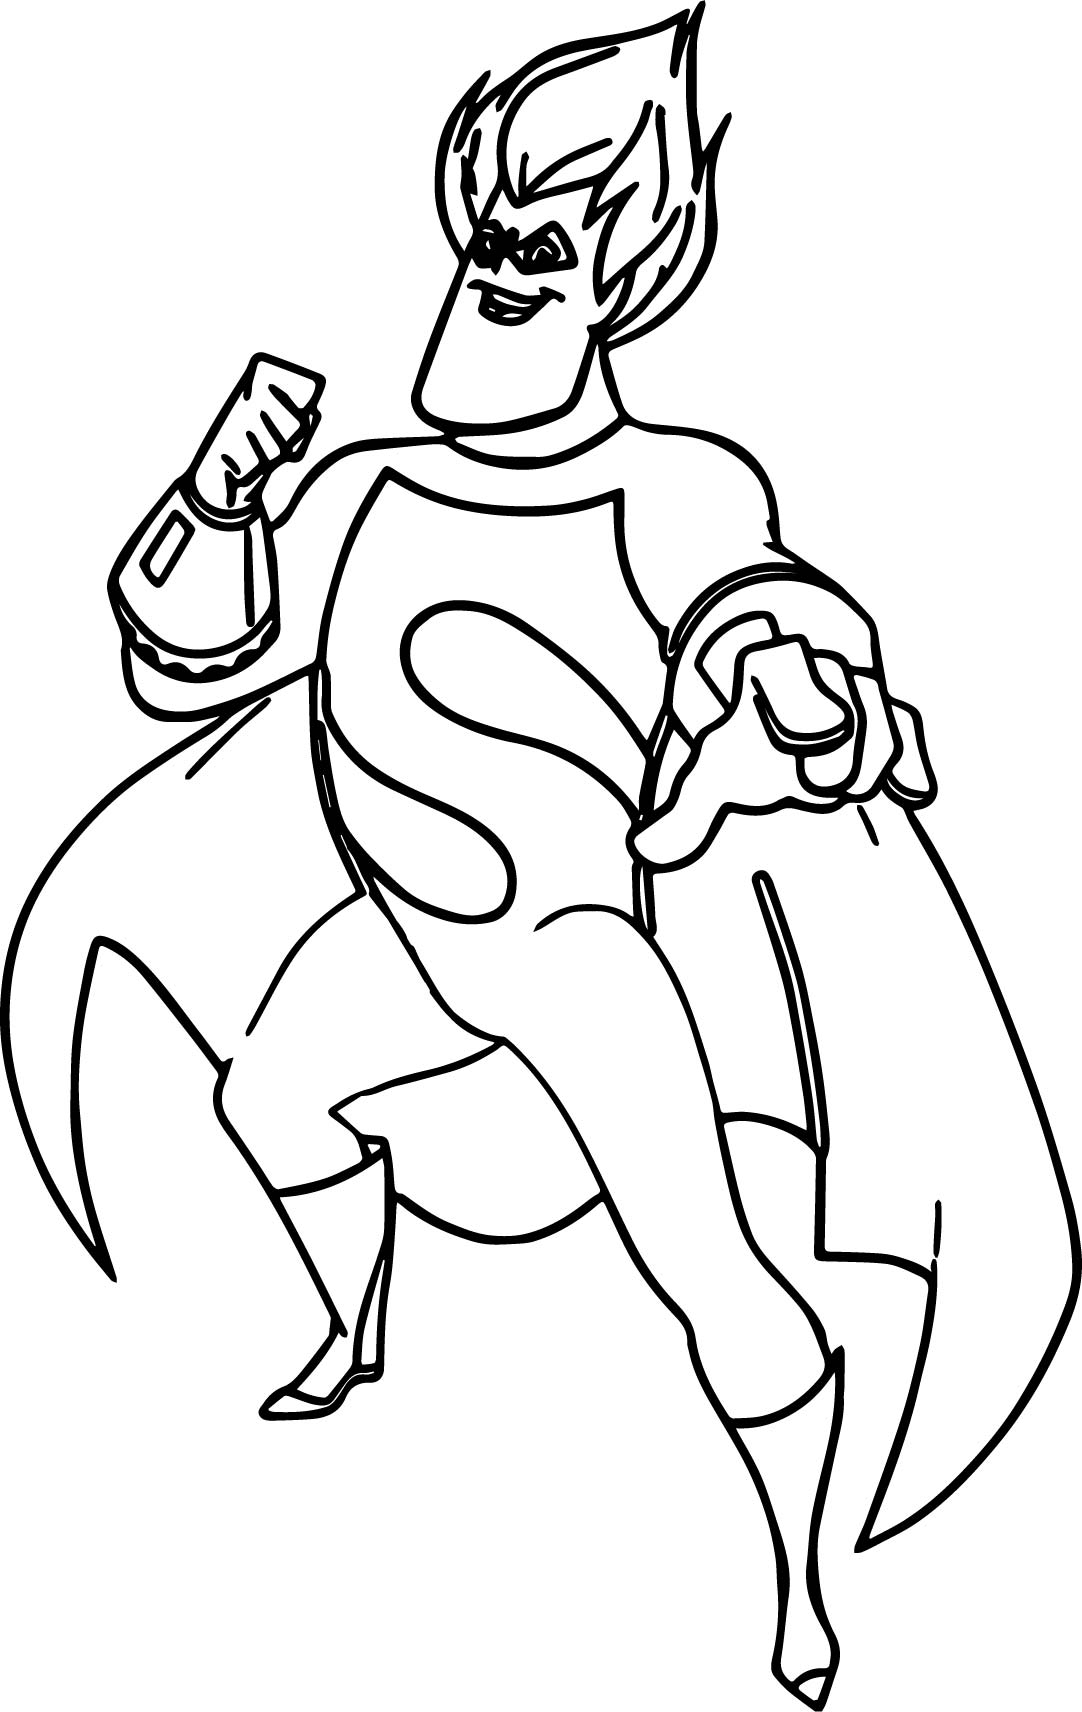 s coloring page - incredibles s man coloring pages